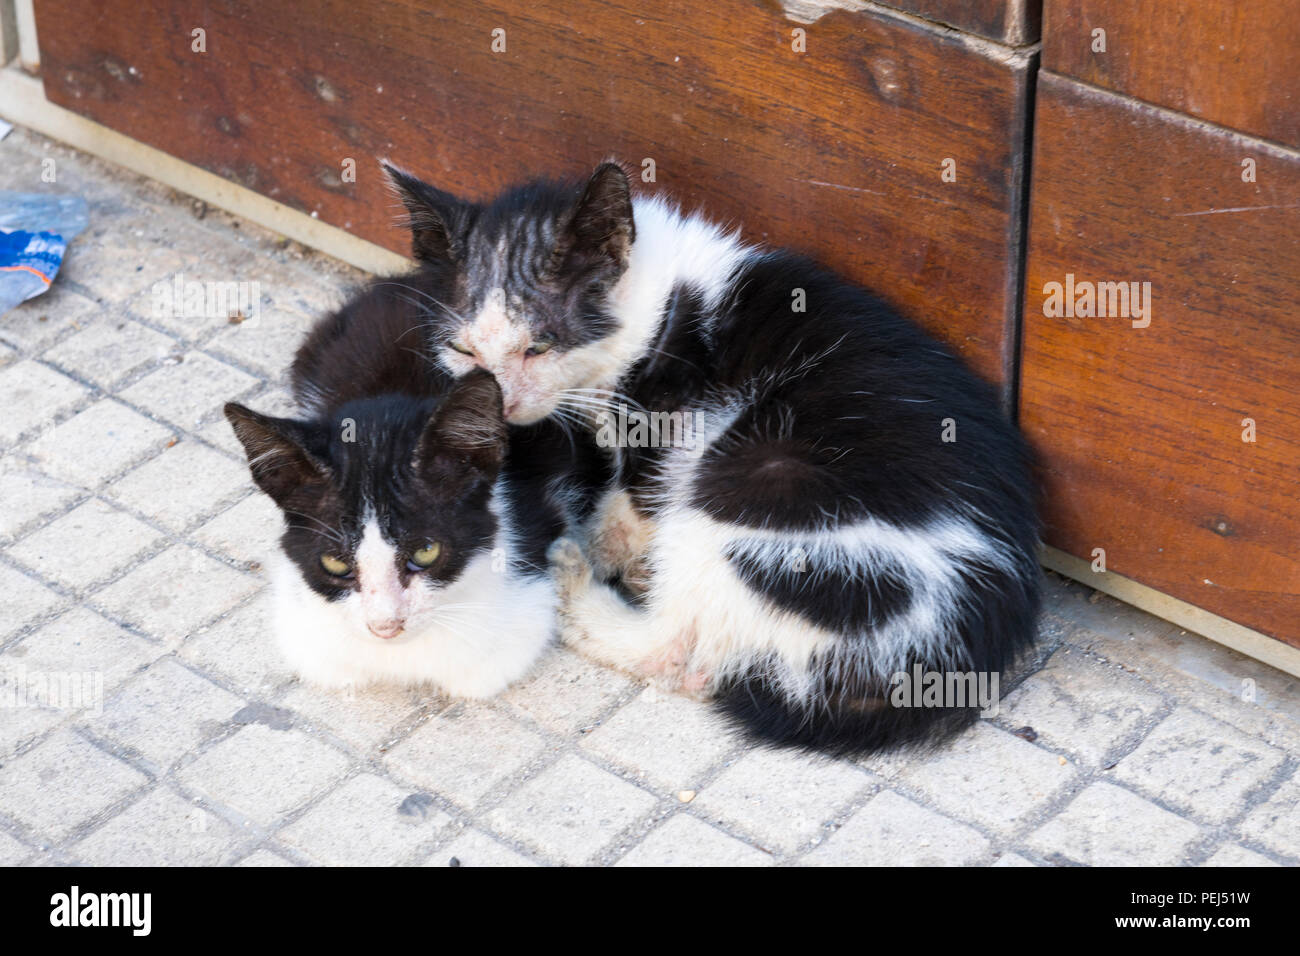 Italy Sicily Syracuse Siracusa Ortygia Two Sweet Cute Baby Cats